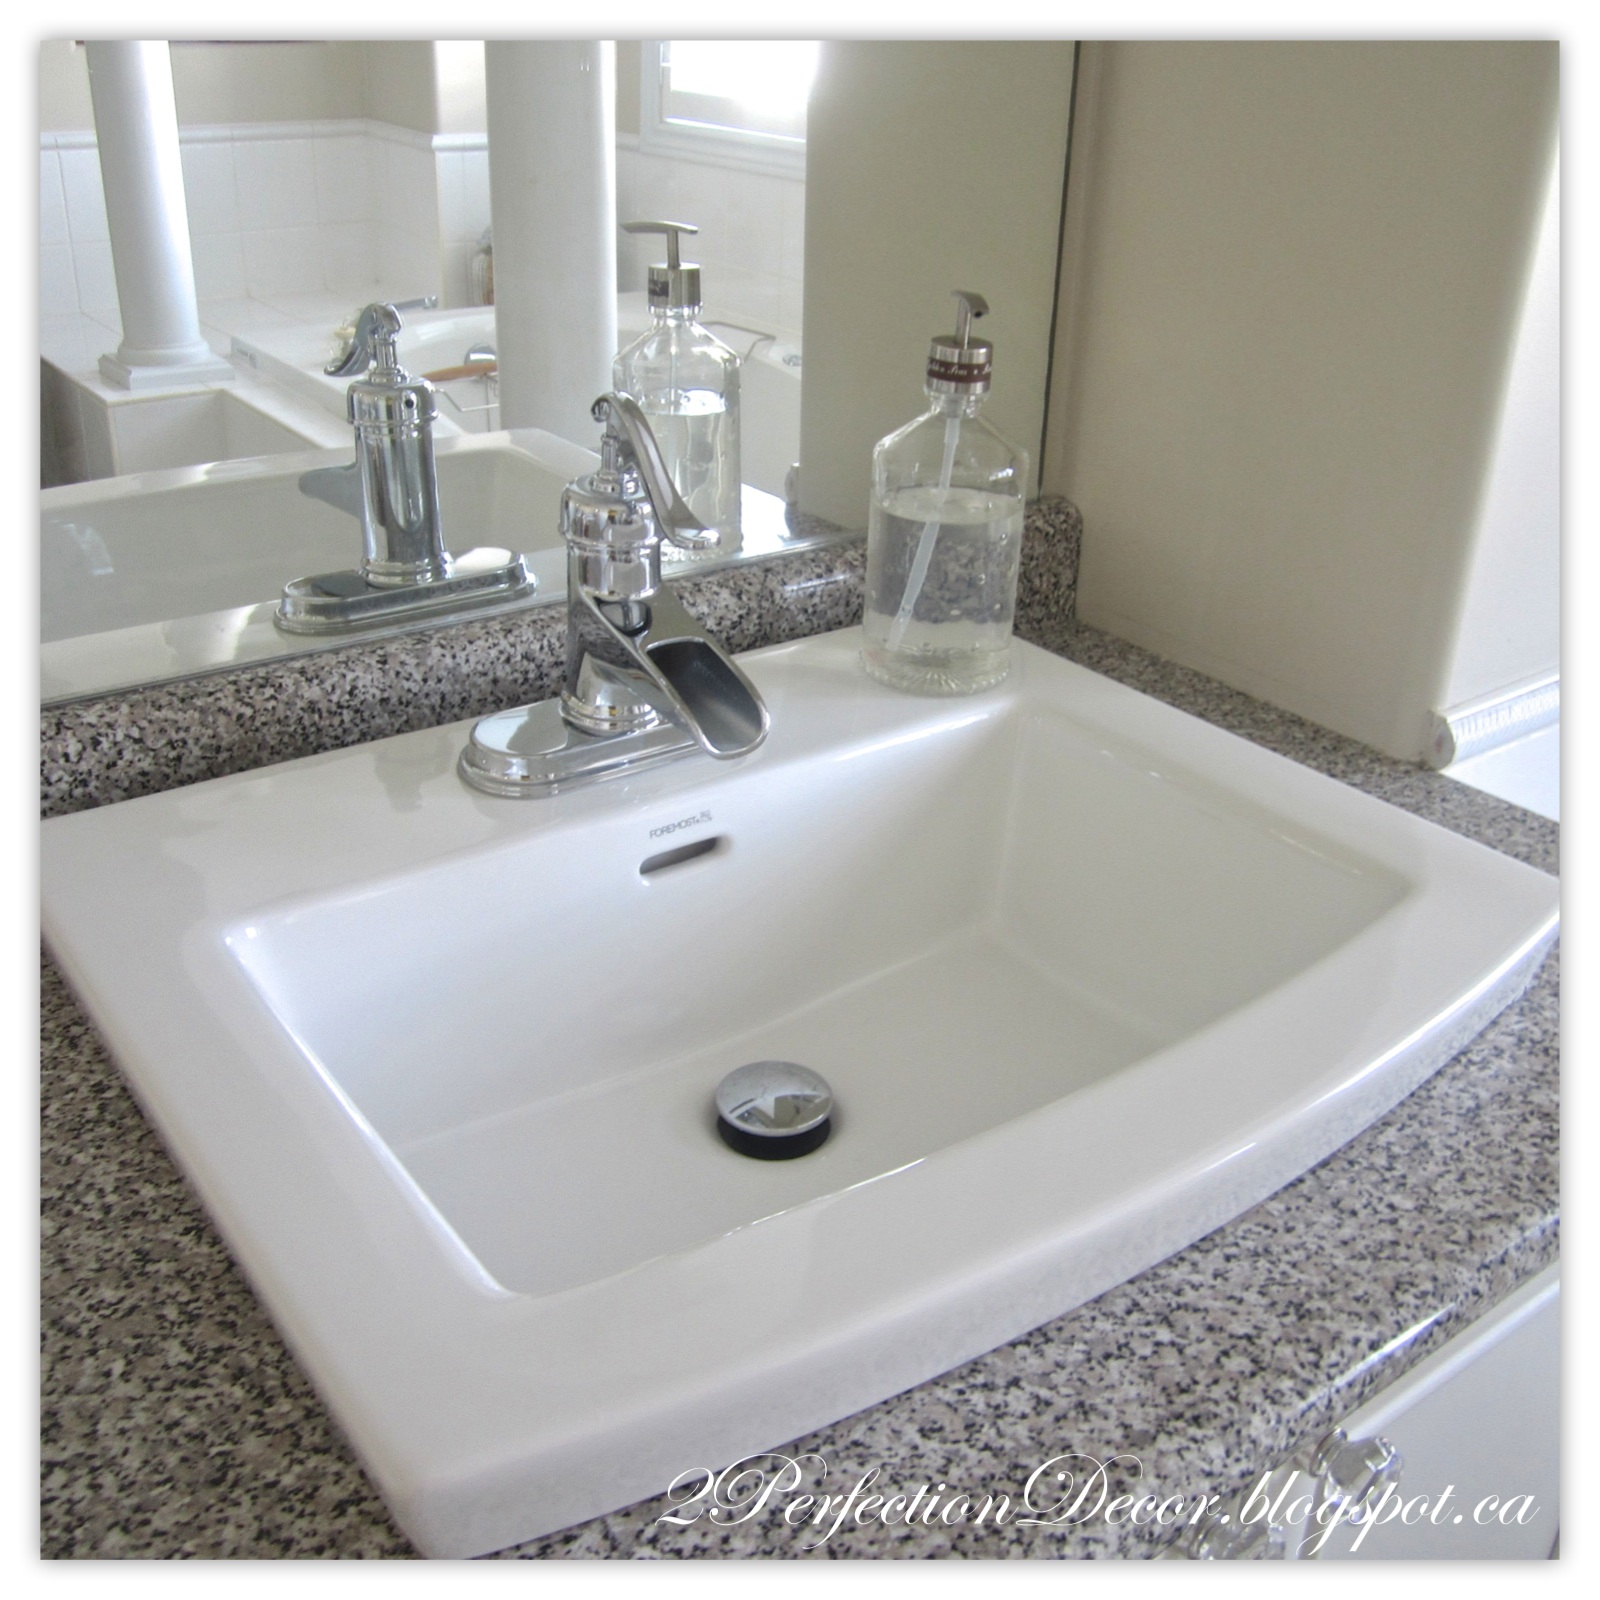 2perfection Decor Updating Old Bathroom Sinks While Re Using